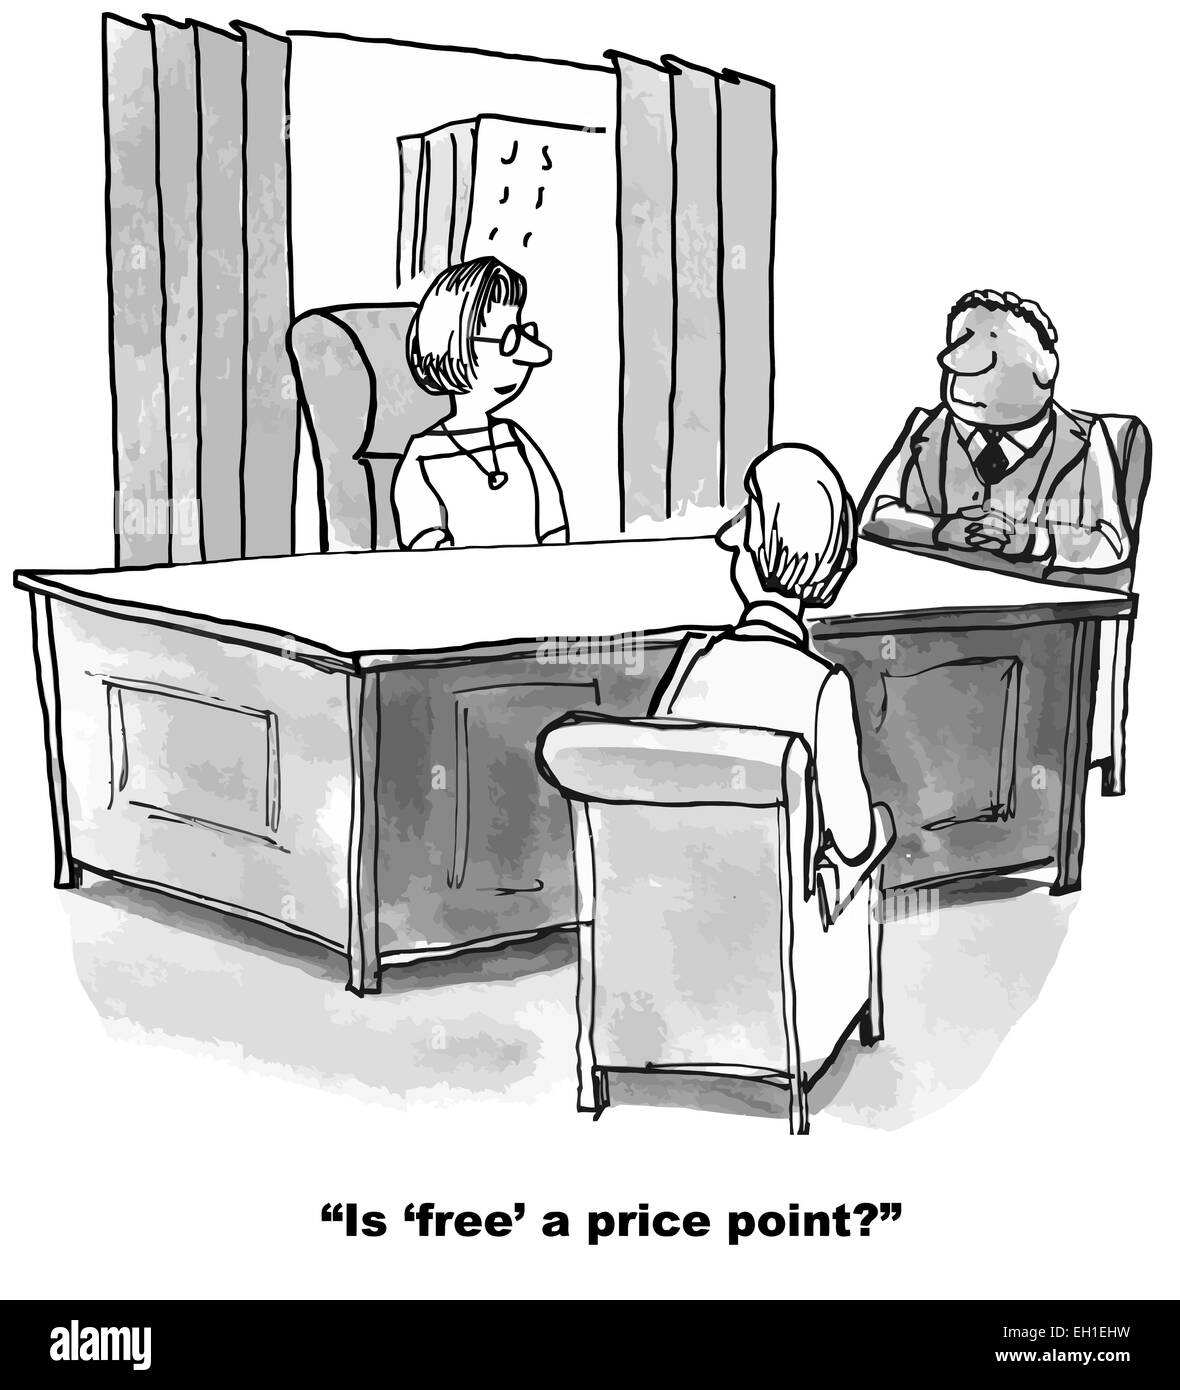 cartoon of business meeting businesswoman asks if free a price